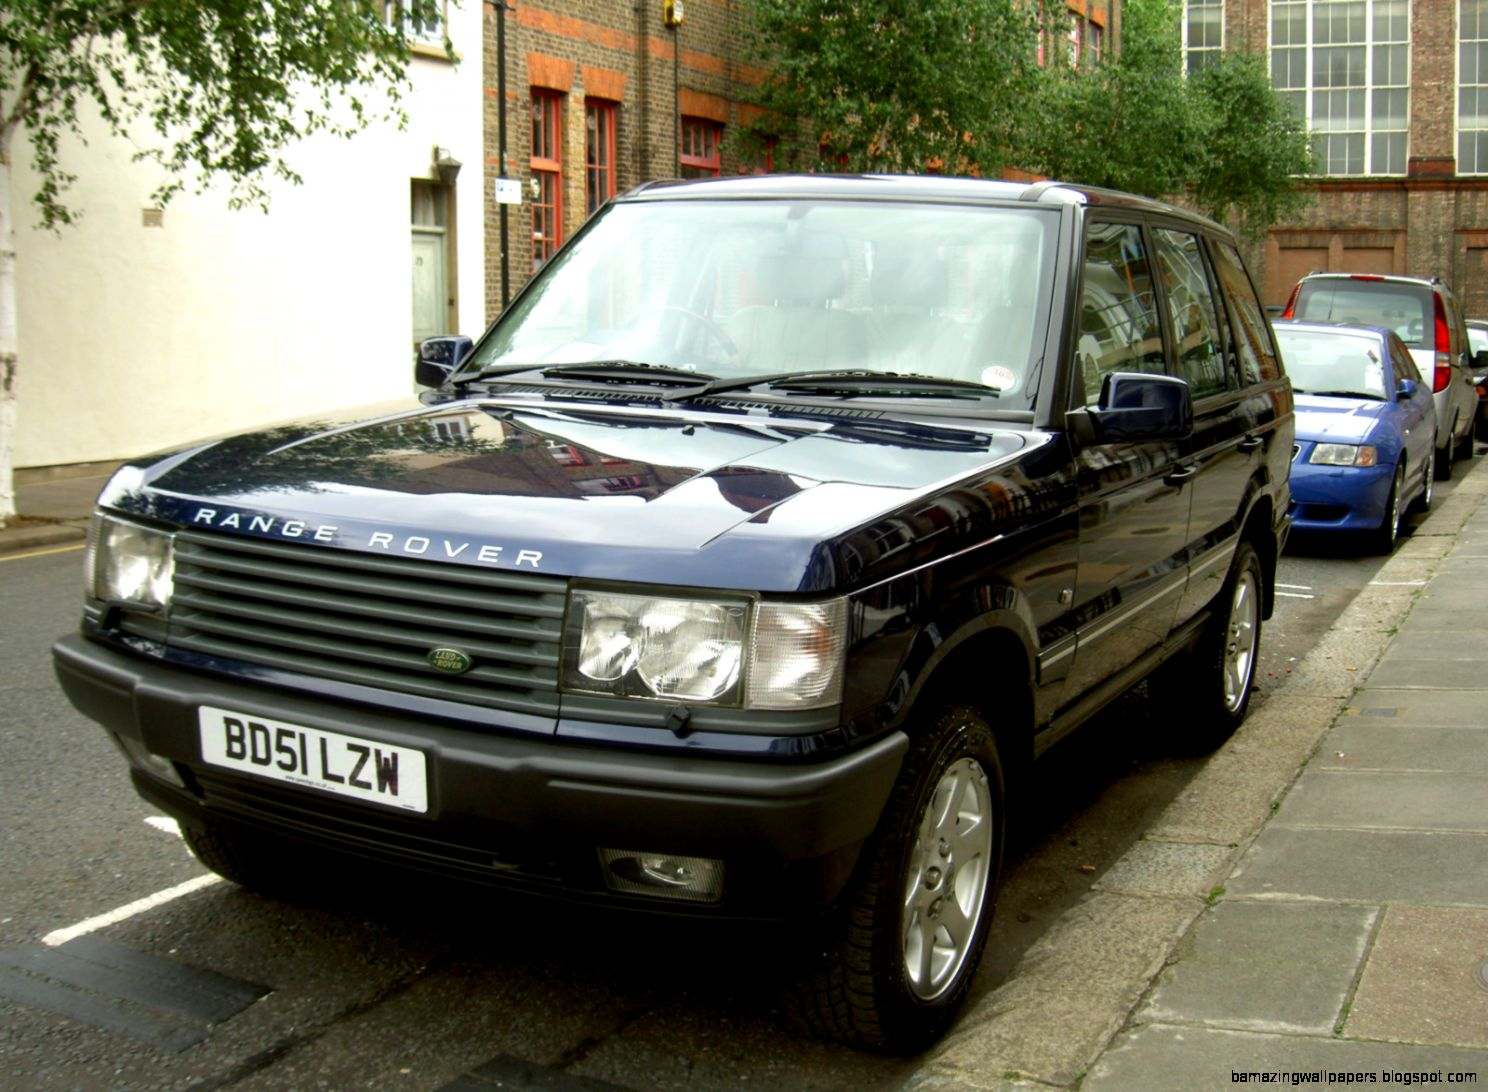 Who Owns Range Rover Amazing Wallpapers